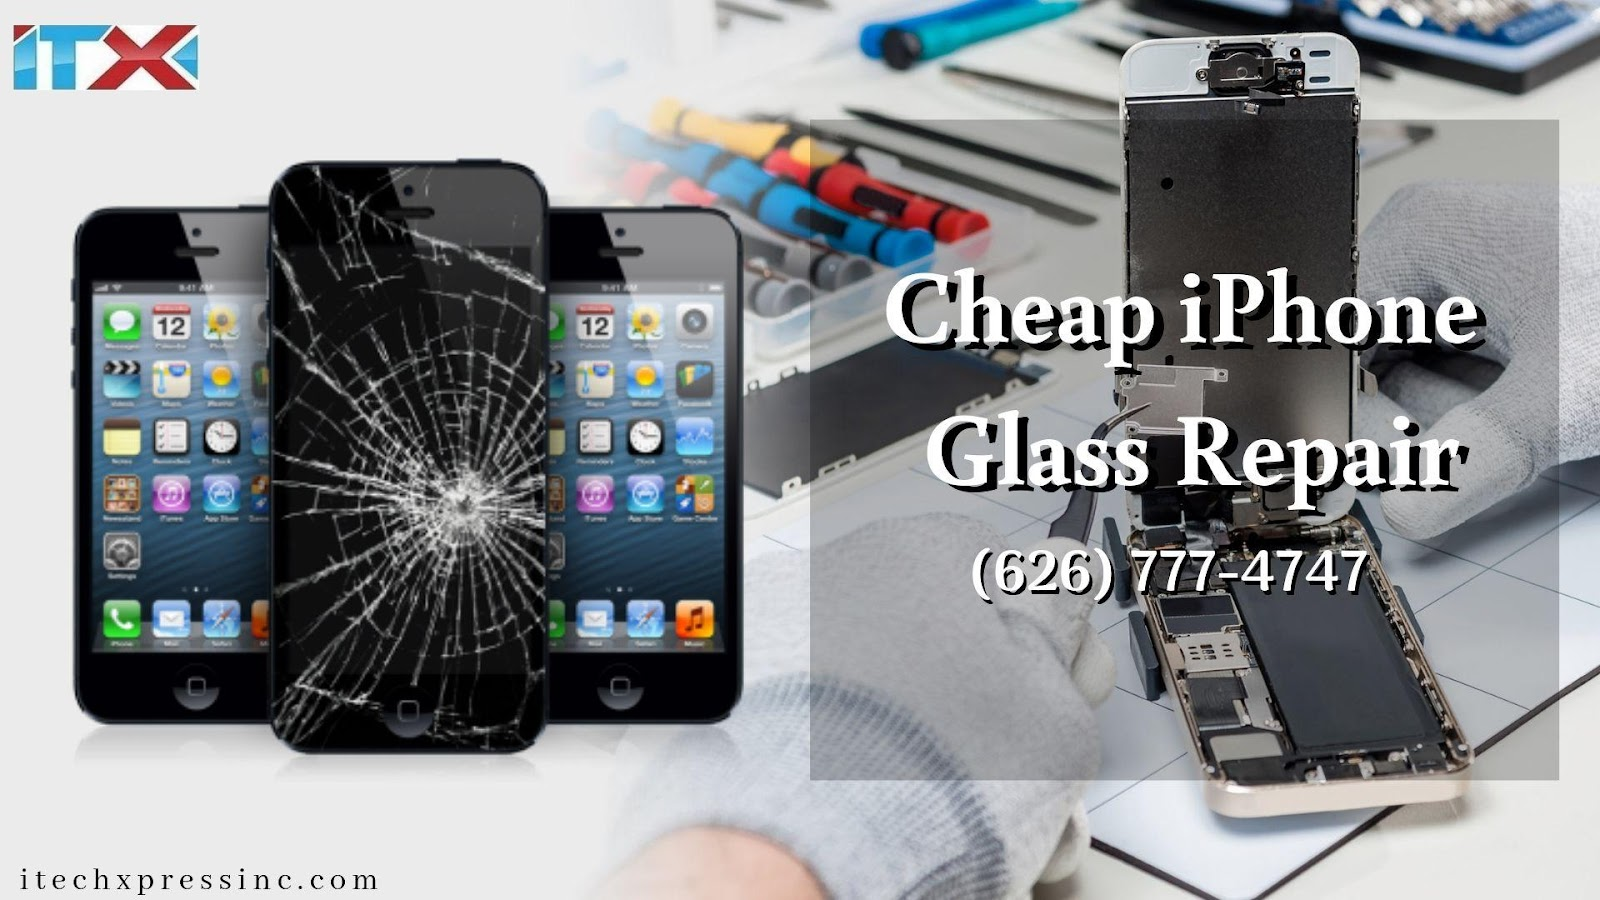 F:\koyel\my project\monday\itechxpressinc.com\blog content\08.08.2019\cheap iphone glass repair.jpg